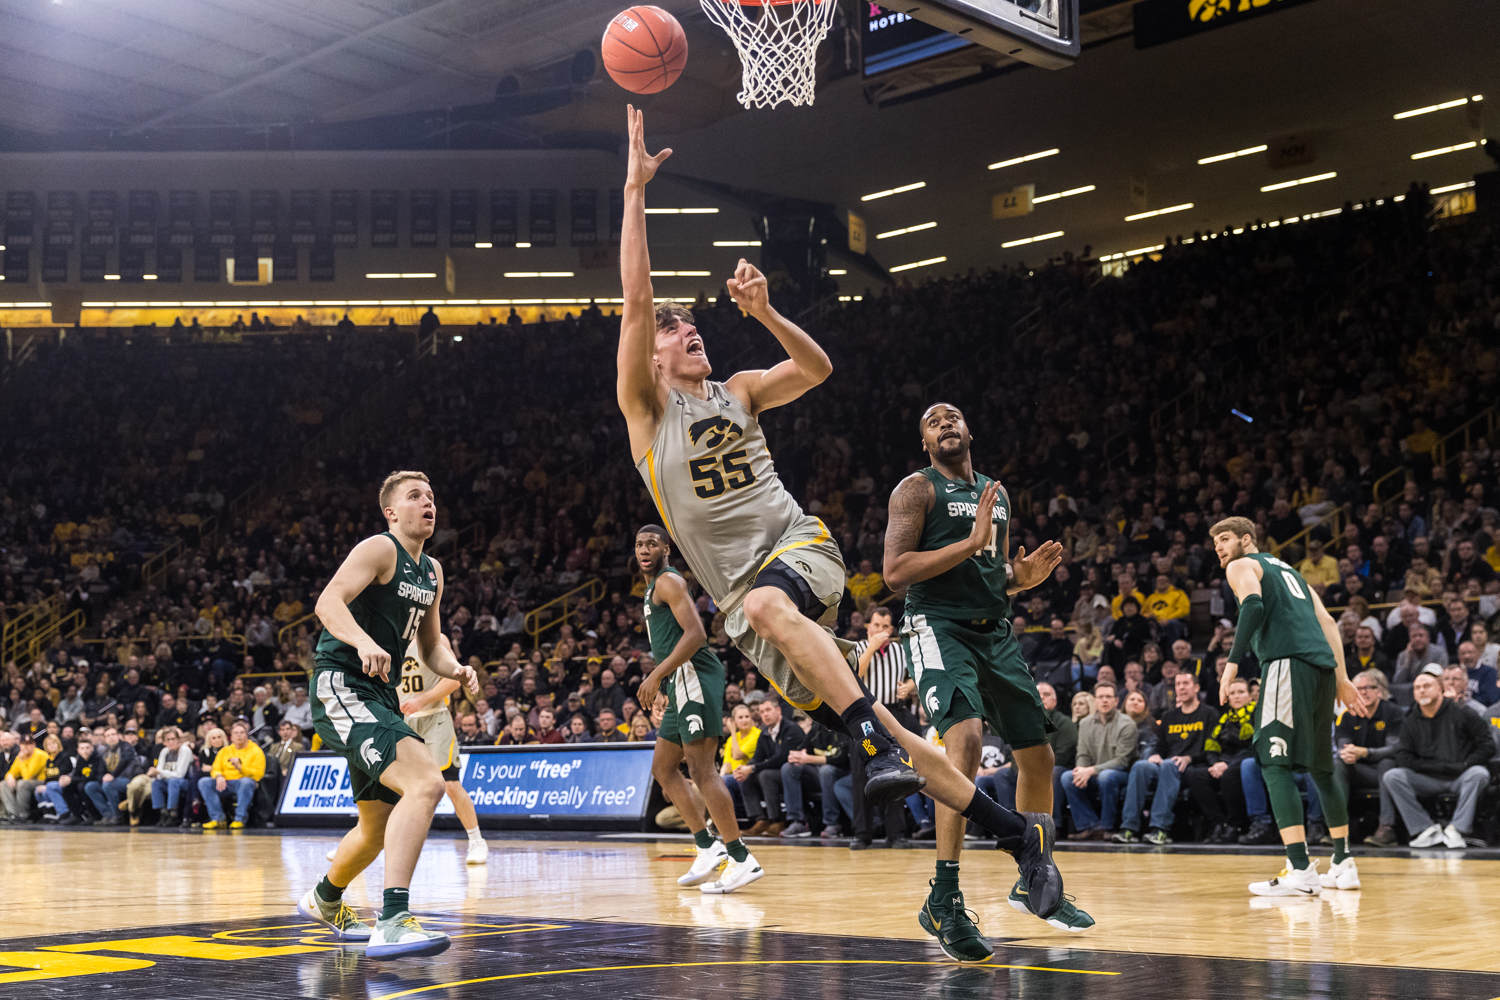 Iowa forward Luka Garza #55 throws up a shot during a basketball game against Michigan State on Thursday, Jan. 24, 2019. The Spartans defeated the Hawkeyes 82-67. (David Harmantas/The Daily Iowan)